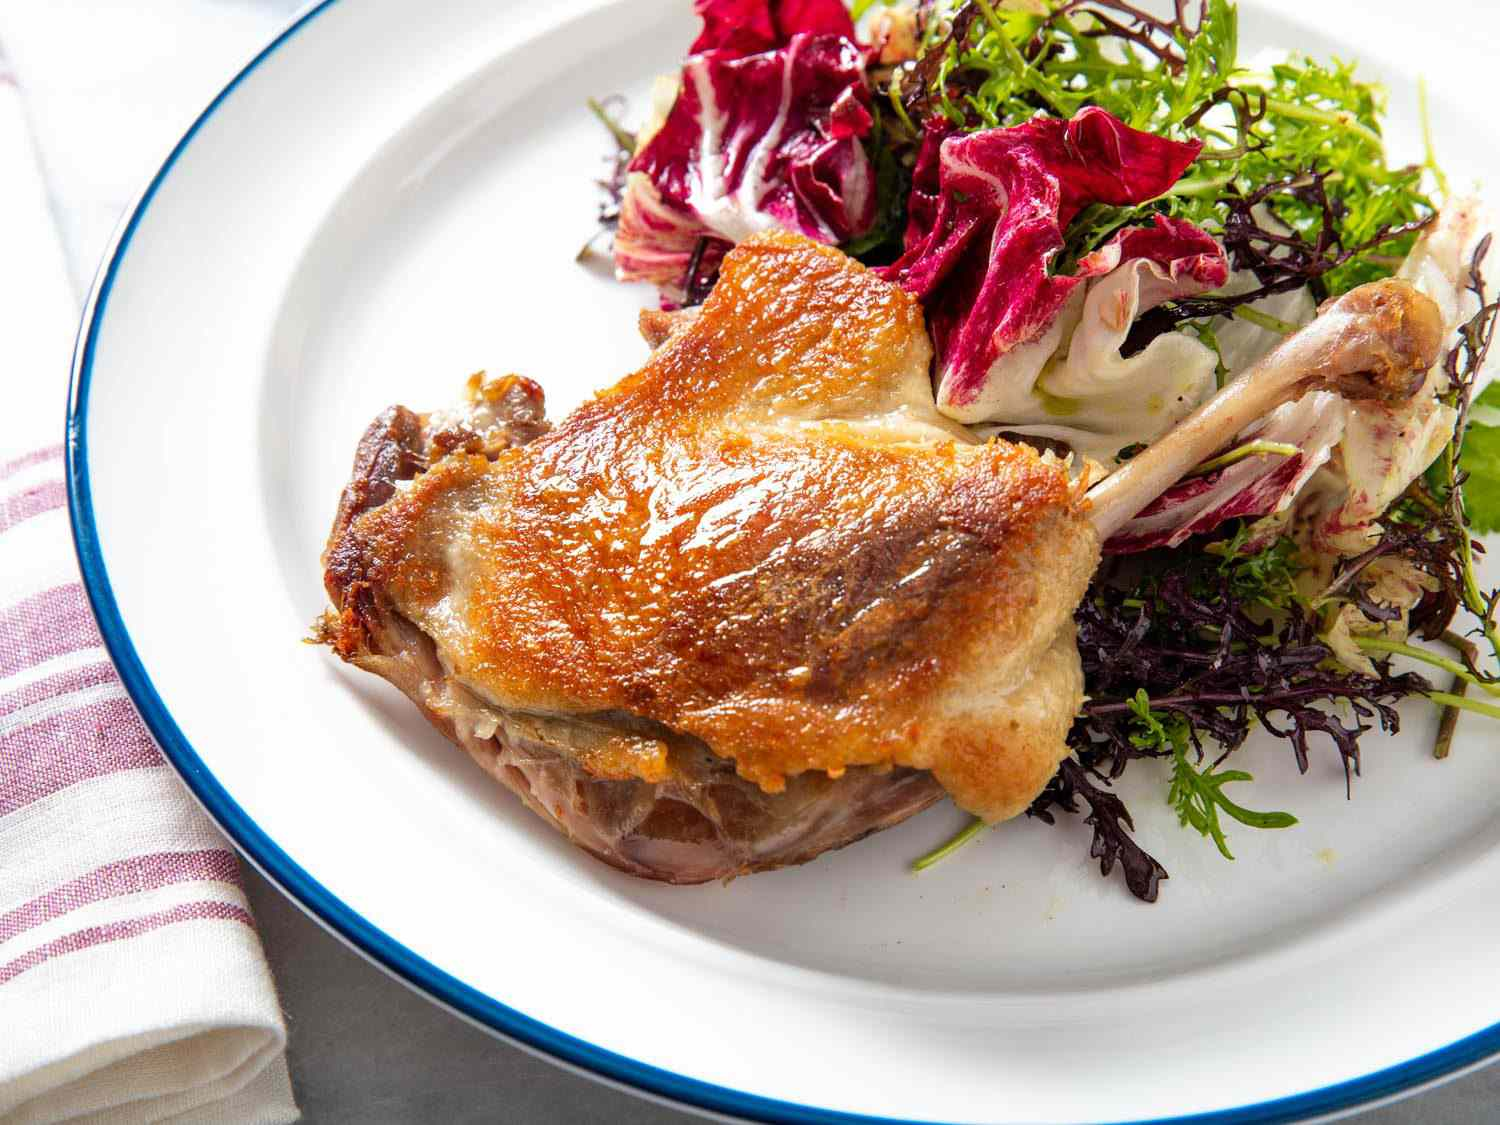 Closeup side view of a crisped confit duck leg with a mixed greens salad.